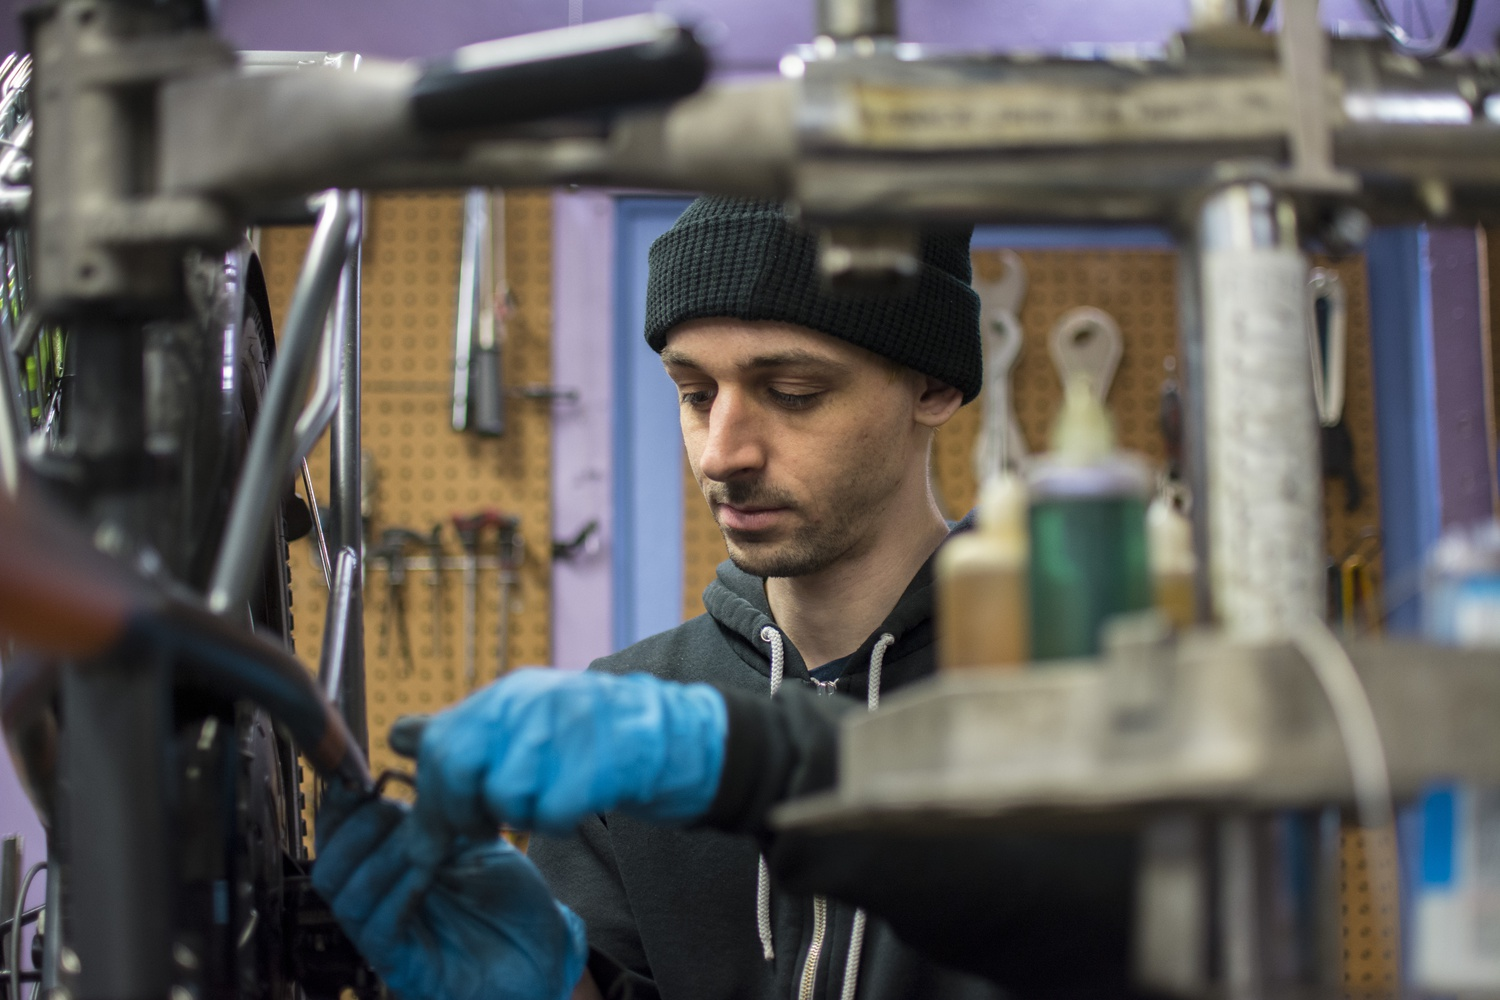 Tucked beneath Cabot House hides an award-winning bikeshop with an anti-capitalist ethos